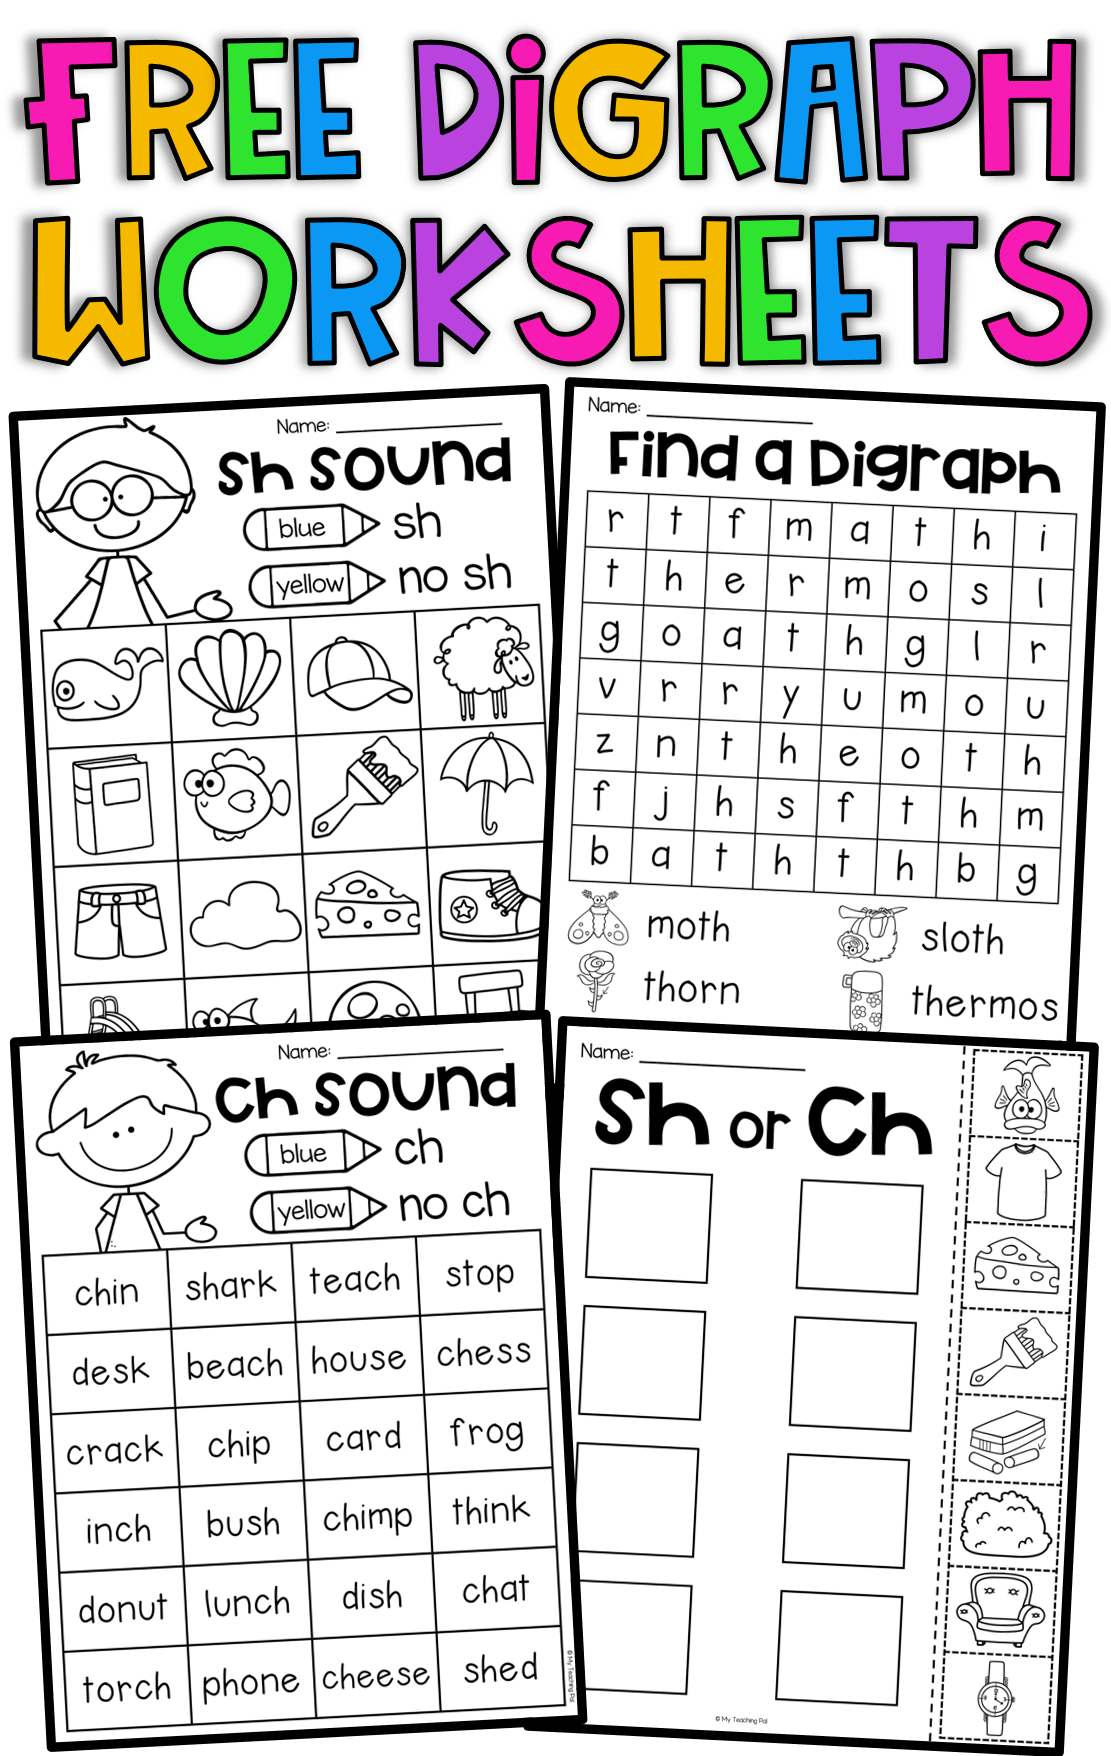 Free Ch Sh Th Digraph Worksheets Your Students Will